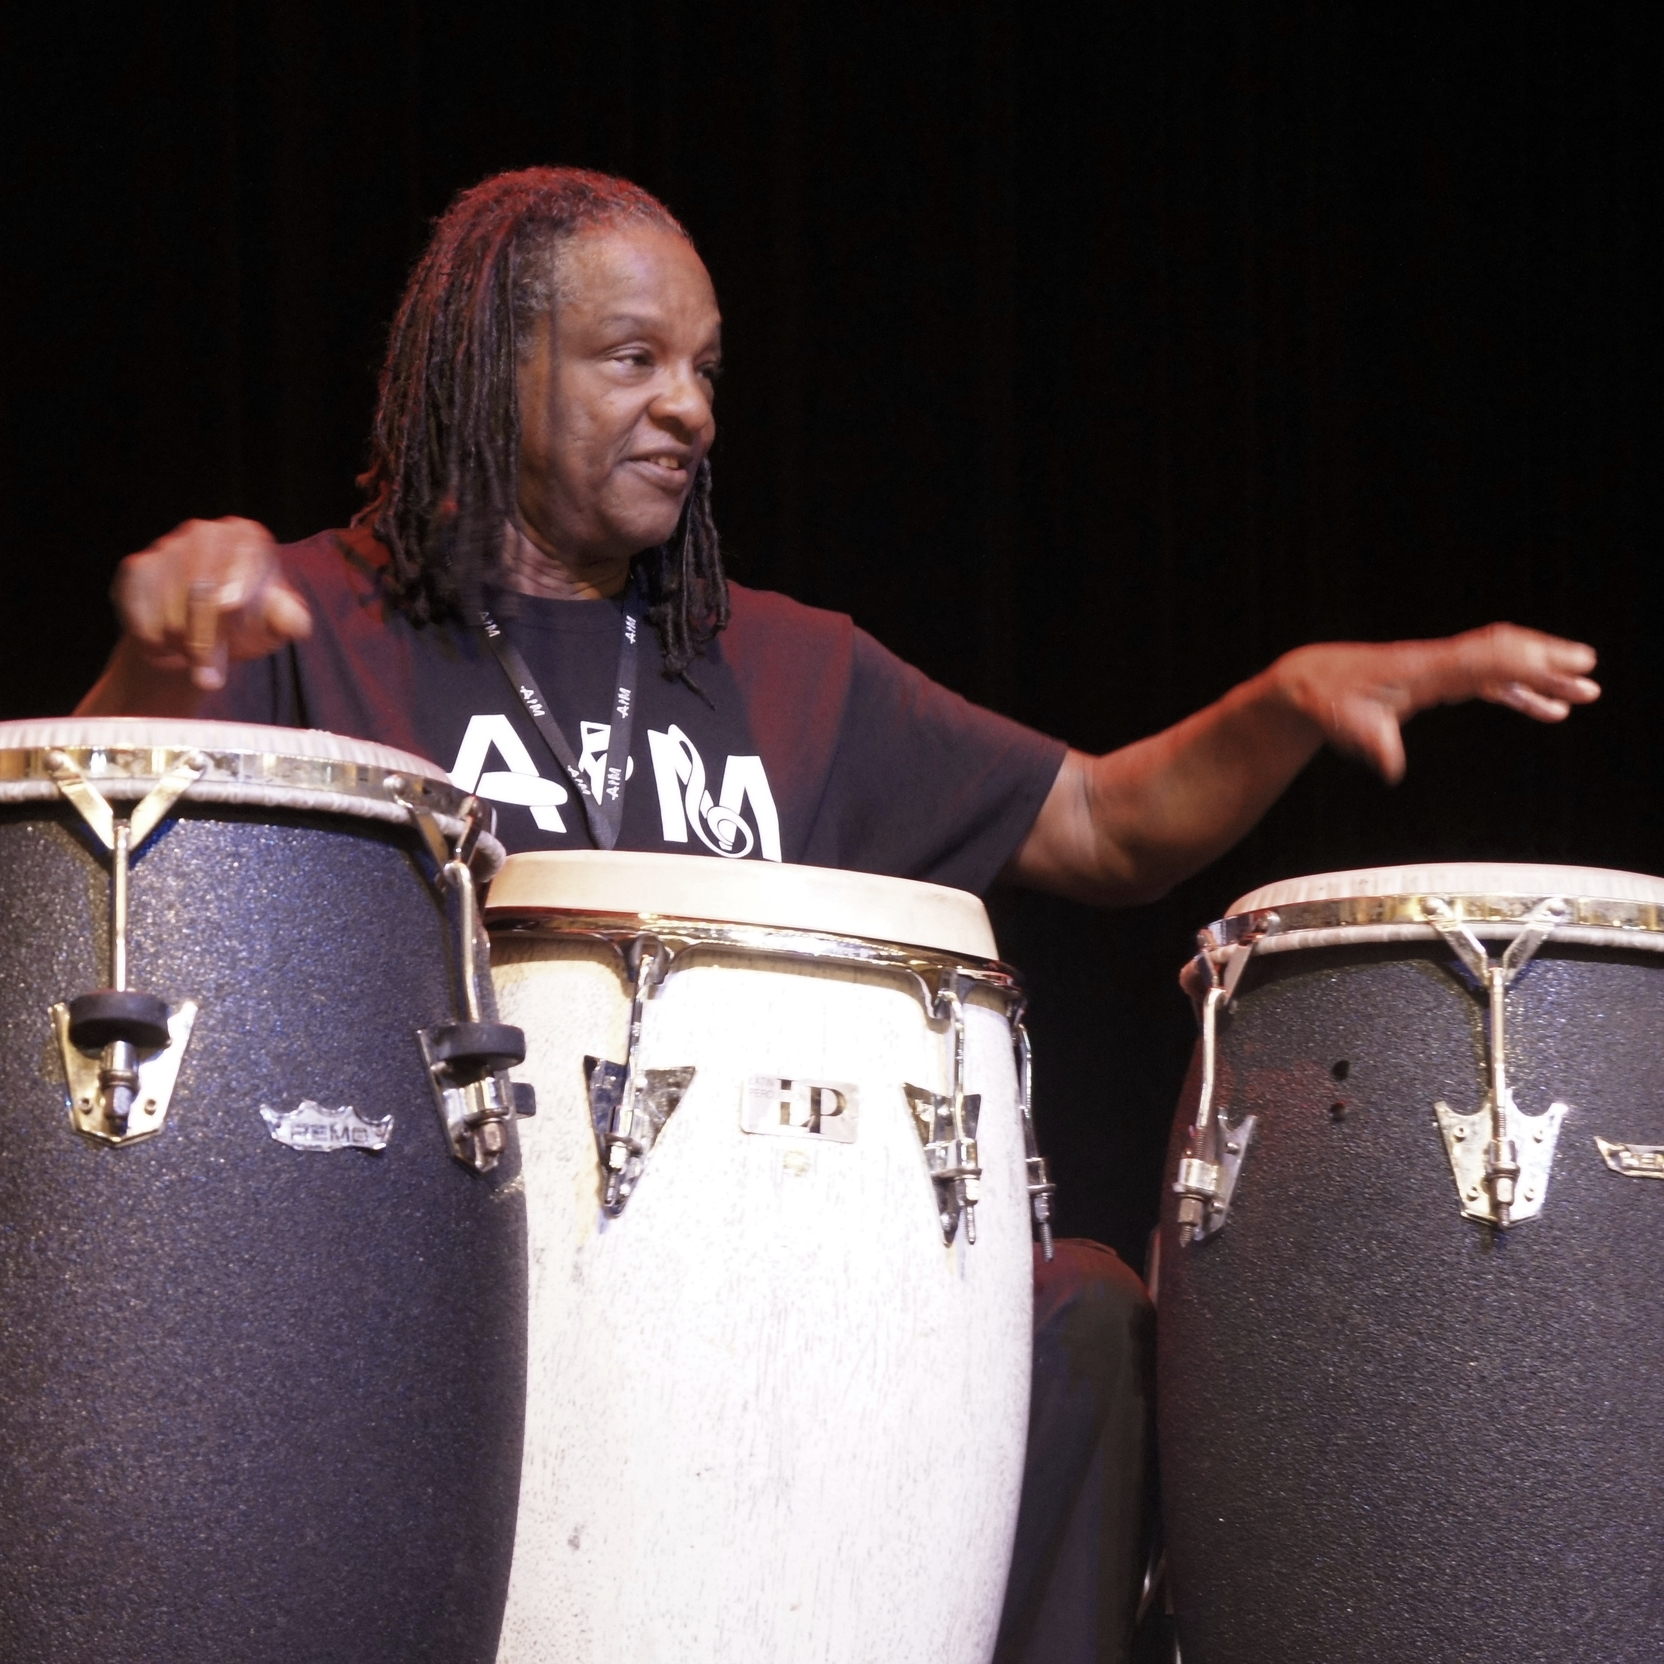 "BABATUNDE LEA Drumming, Chanting, and Dance(2015-16 COHORT) - A professional musician and music educator, Babatunde Lea teaches and plays rhythms from the African Diaspora focusing on playing percussion instruments - teaching their technique, spirit, and application. He teaches from an African perspective, including drumming, chanting, and dance. Babatunde concentrates on the communal feelings that each drumming tradition can produce, emphasizing that just like polyrhythms, we are all connected. ""If you walk, you can dance; if you talk, you can sing"" (old African proverb).See Tunde's Blog →"